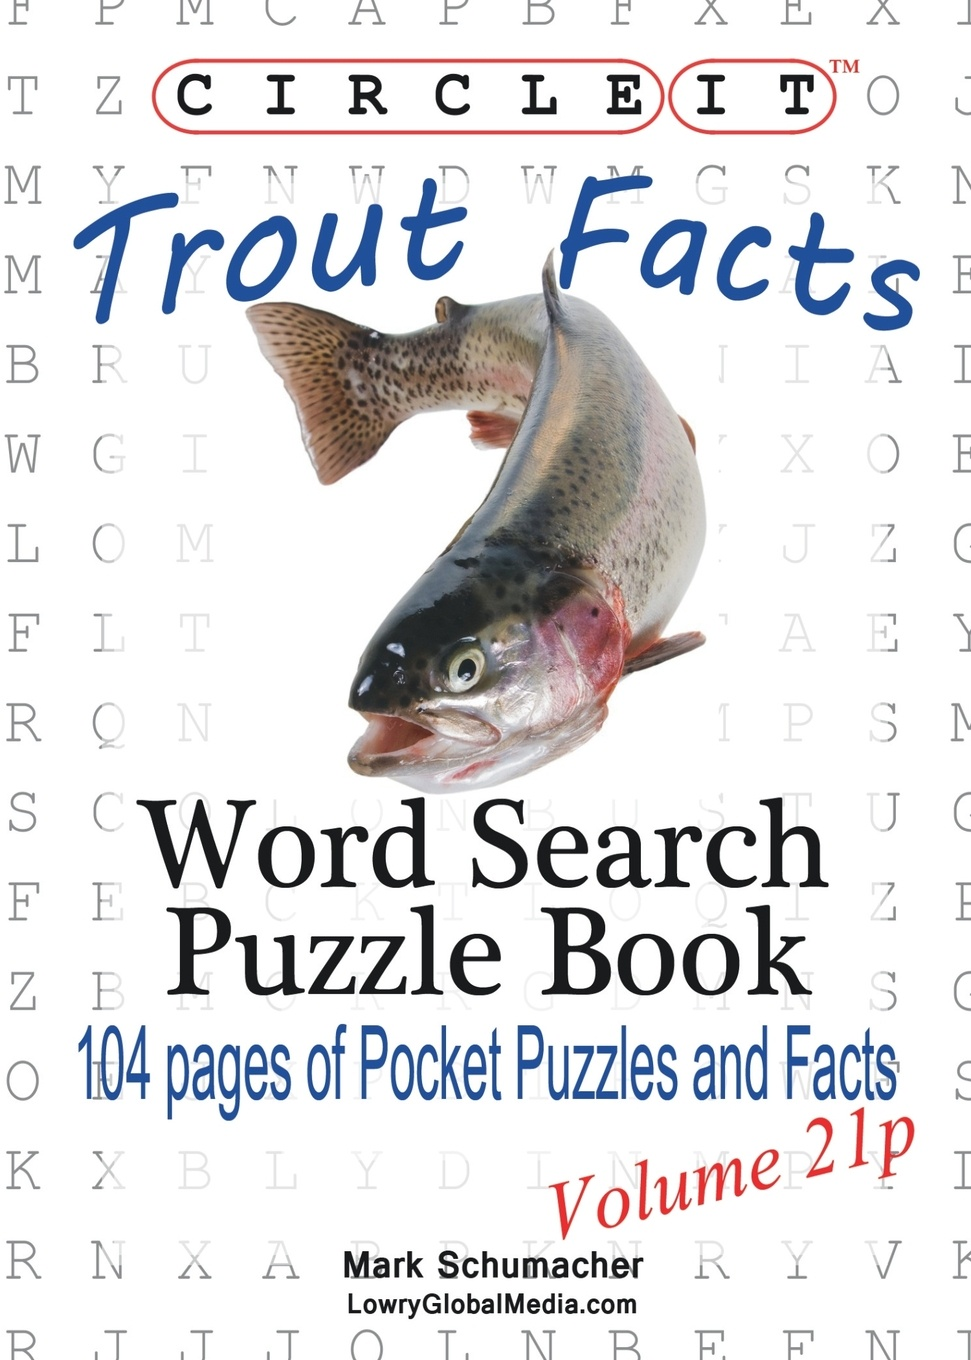 Lowry Global Media LLC, Mark Schumacher Circle It, Trout Facts, Pocket Size, Word Search, Puzzle Book k day day s page 1 page 3